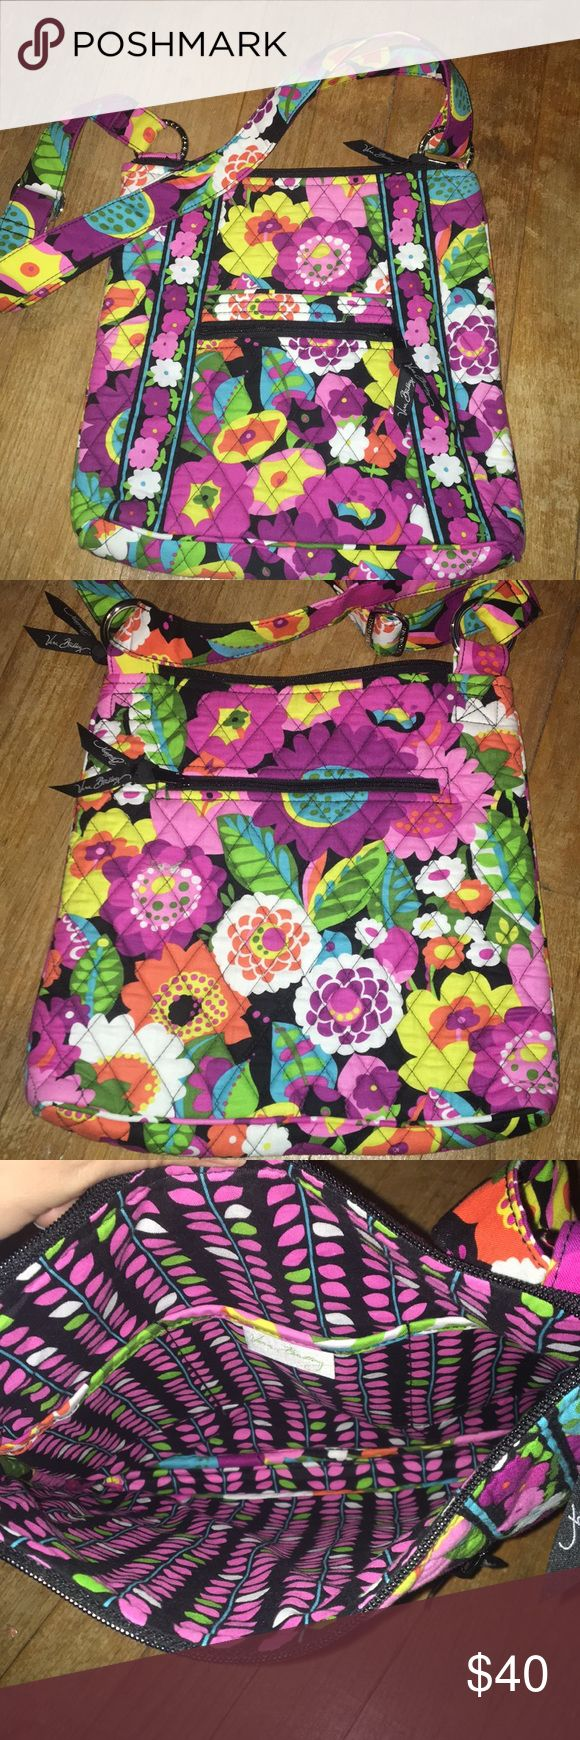 Vera Bradley Cross Body/Satchel Vera Bradley cross body bag with adjustable strap, multiple pockets, and never used! NWOT Vera Bradley Bags Crossbody Bags